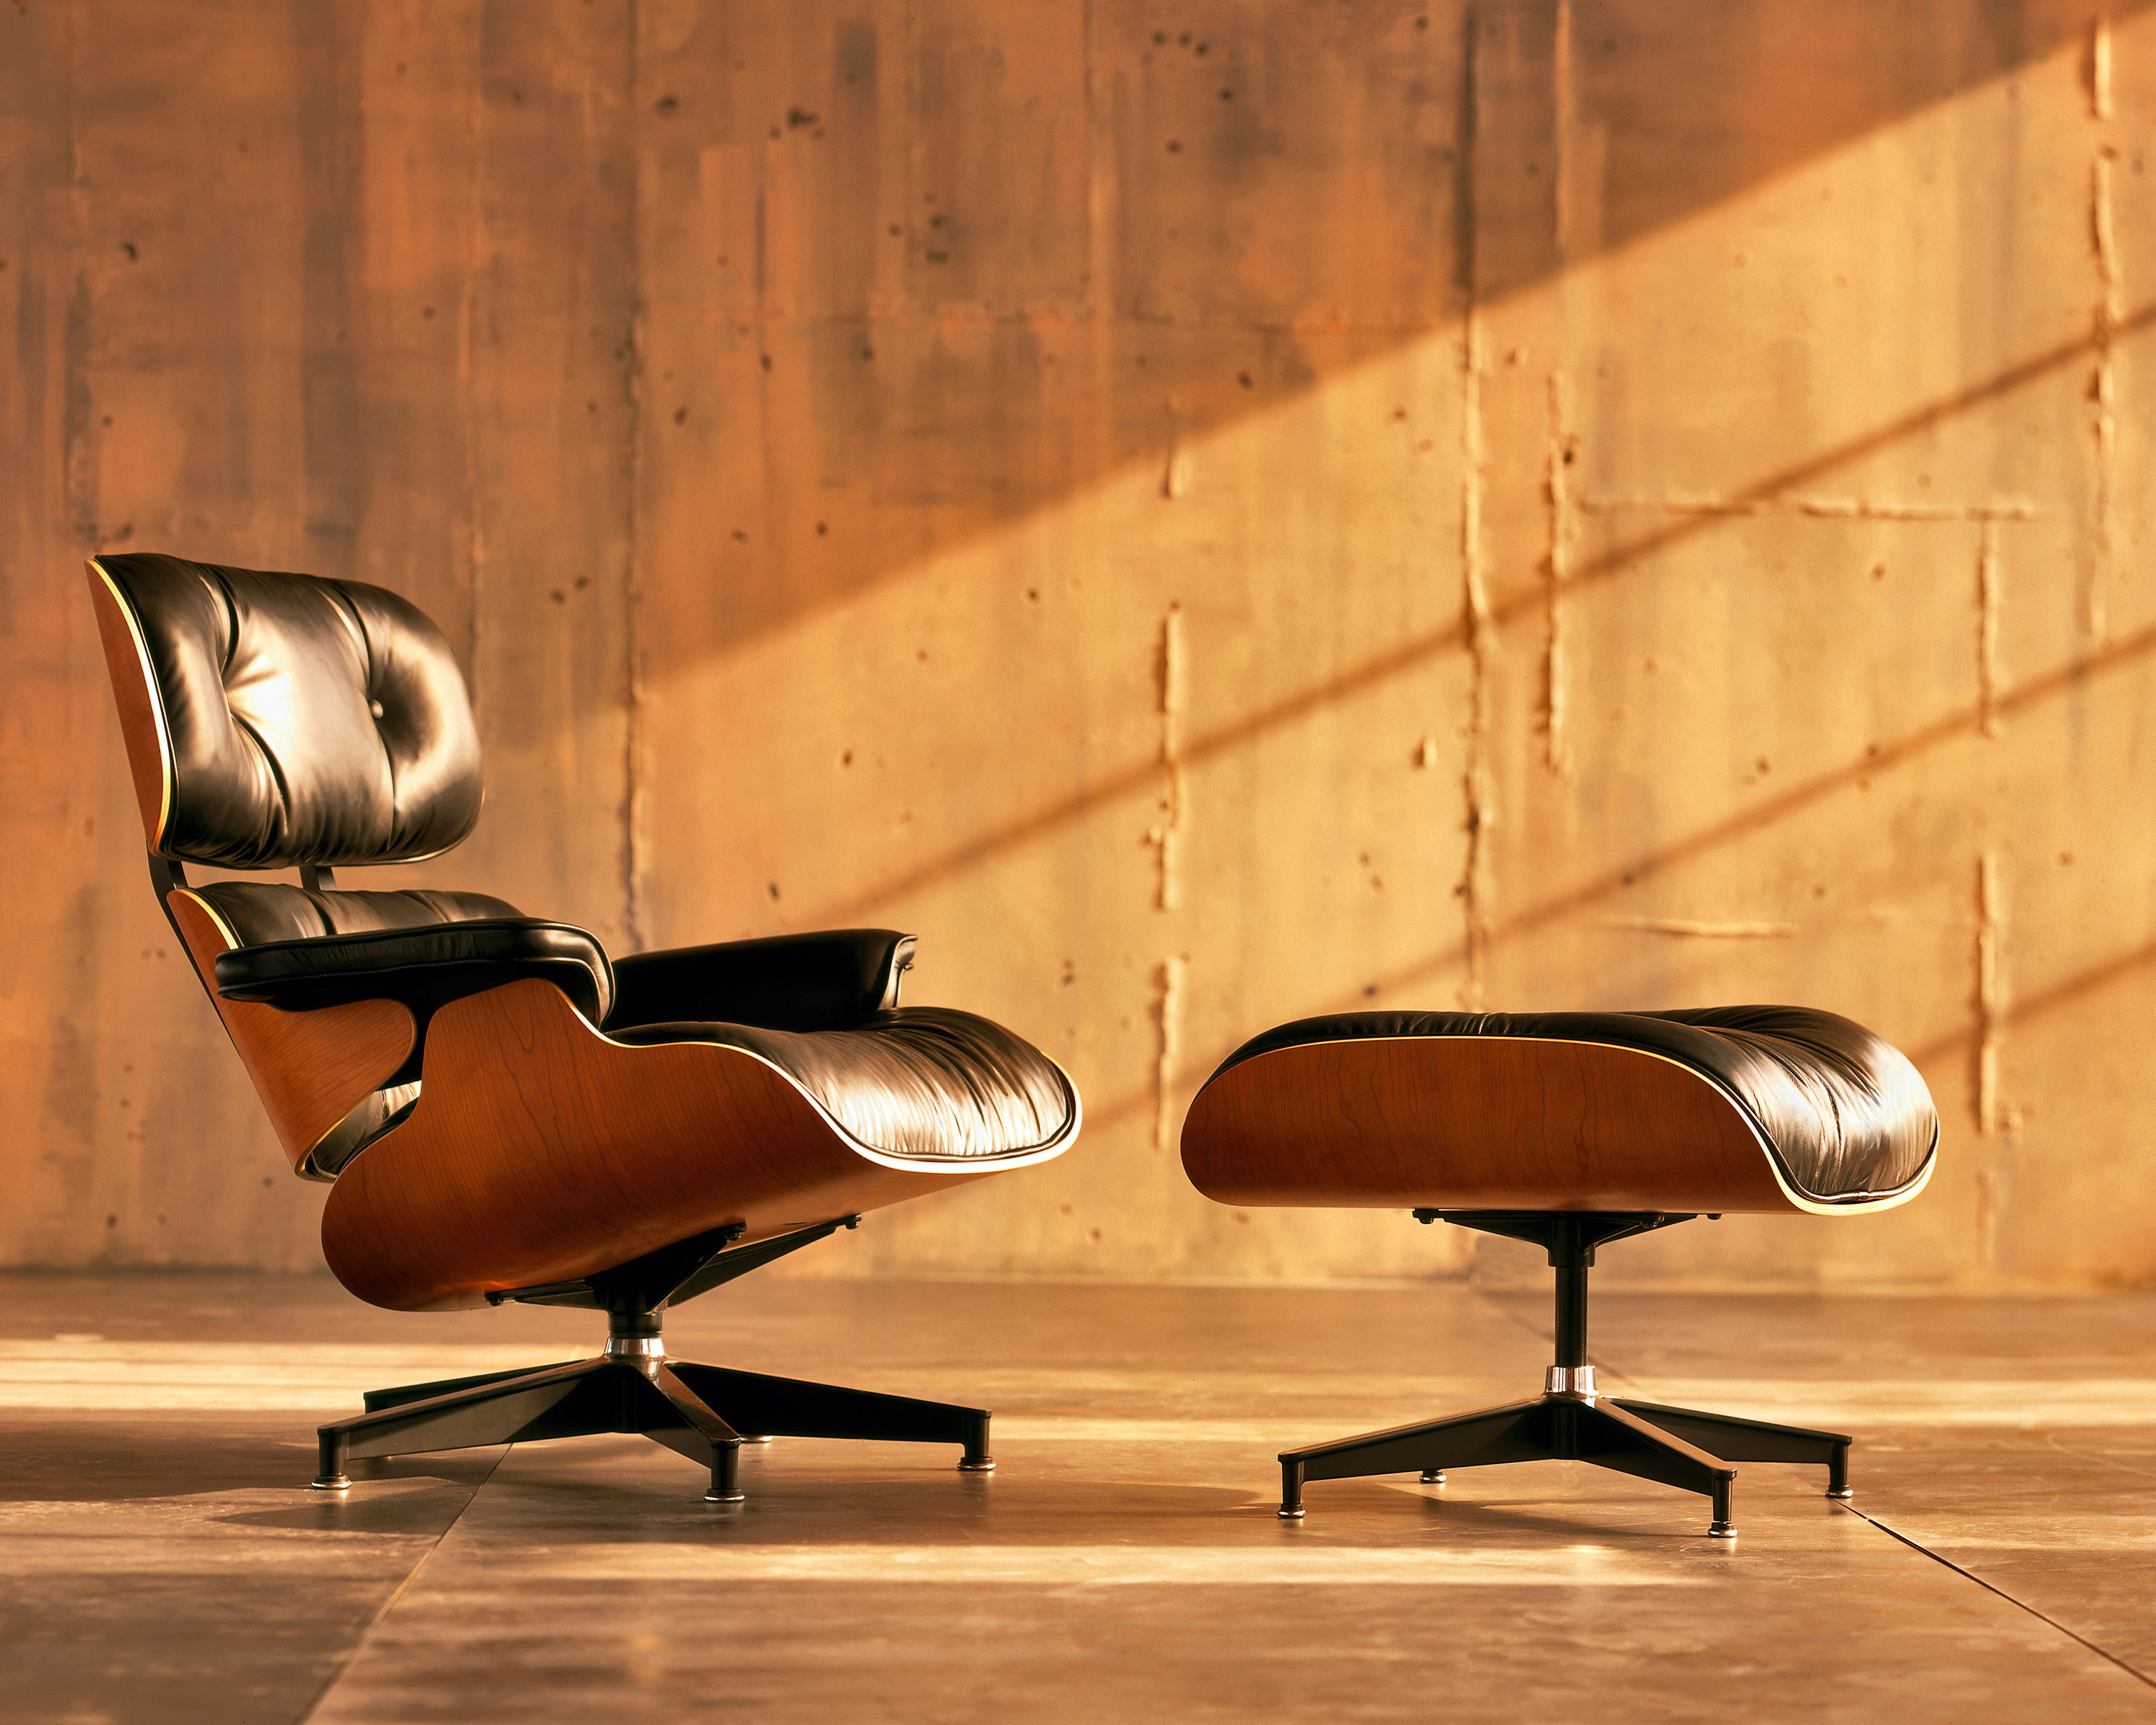 replica of eames lounge chair and ottoman find and buy eames chair replica. Black Bedroom Furniture Sets. Home Design Ideas